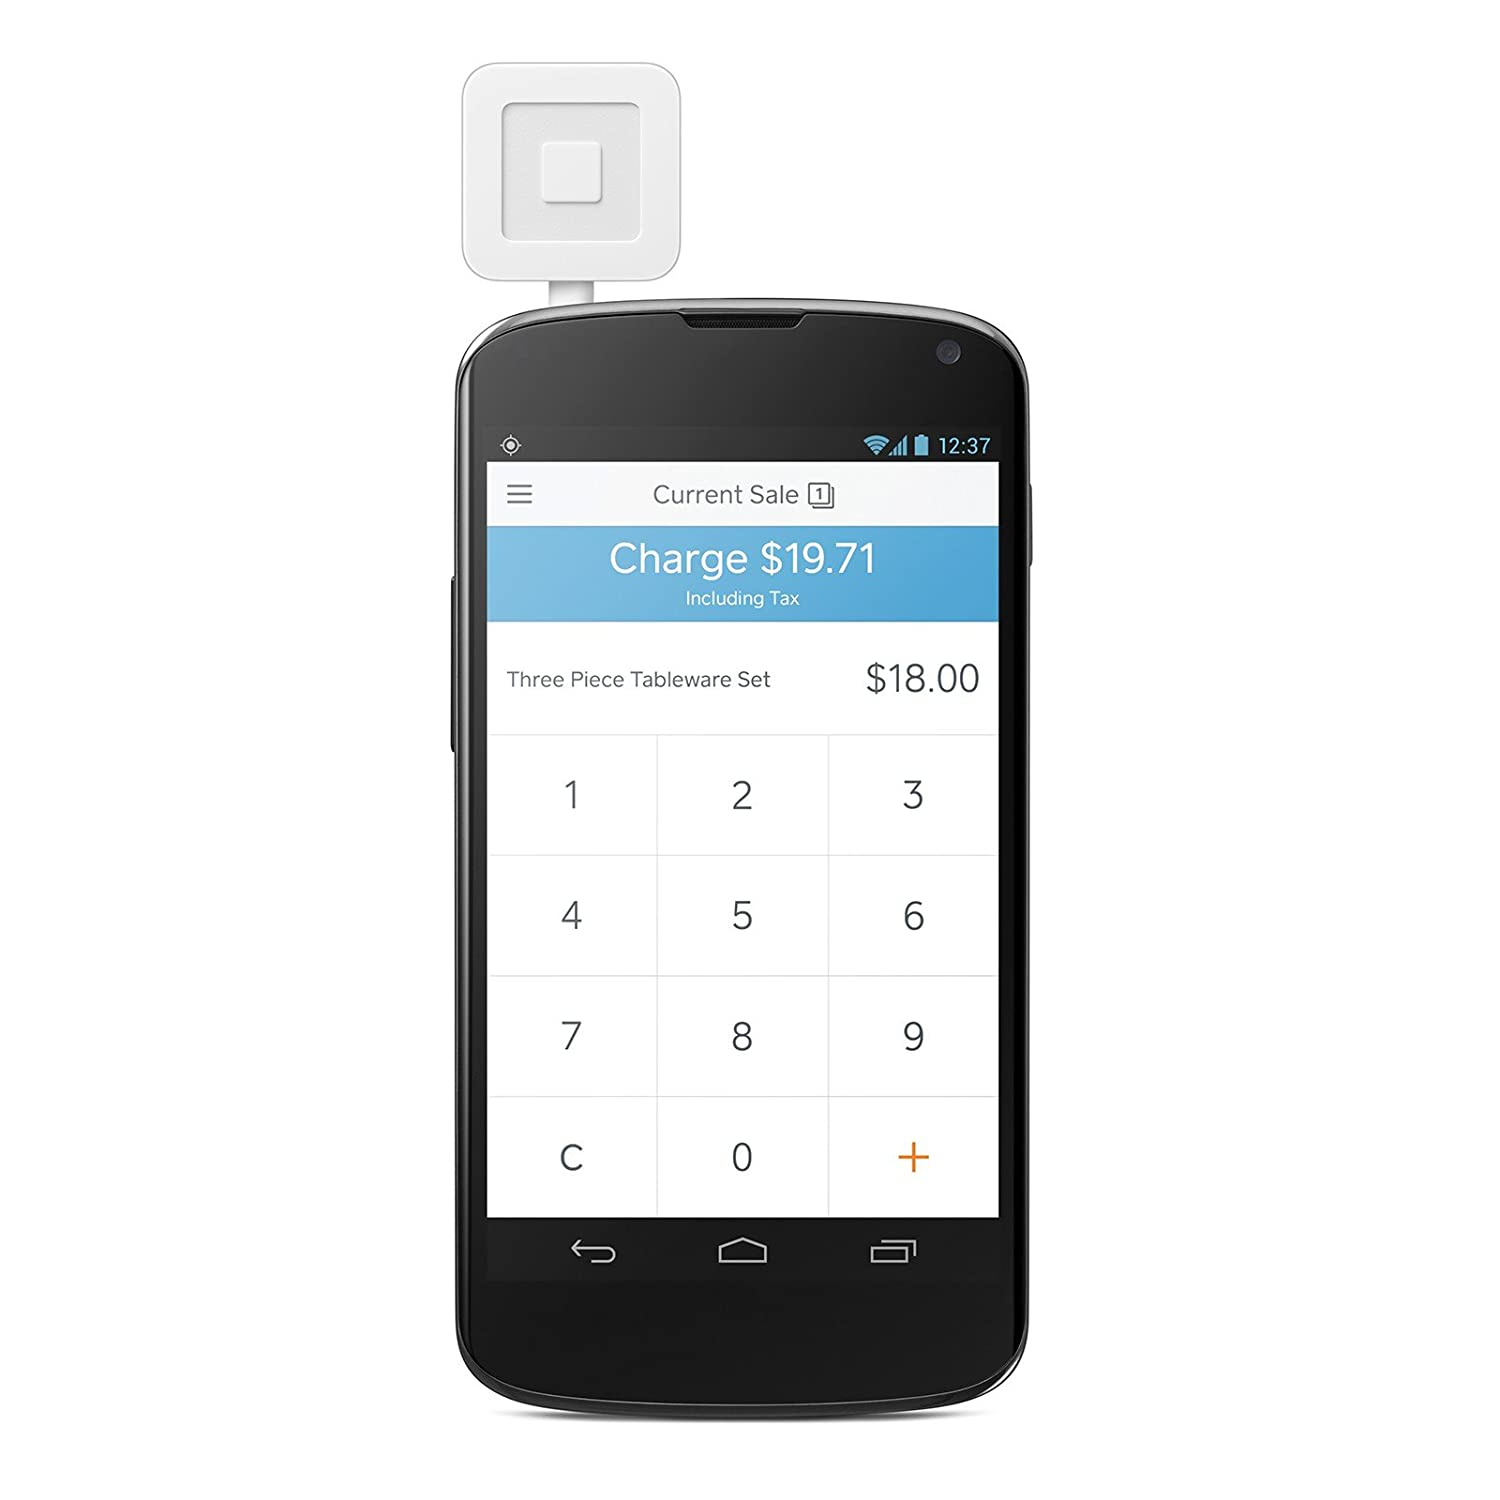 Amazon.com: Square Credit Card Reader 2014 with 10 Dollar Account ...